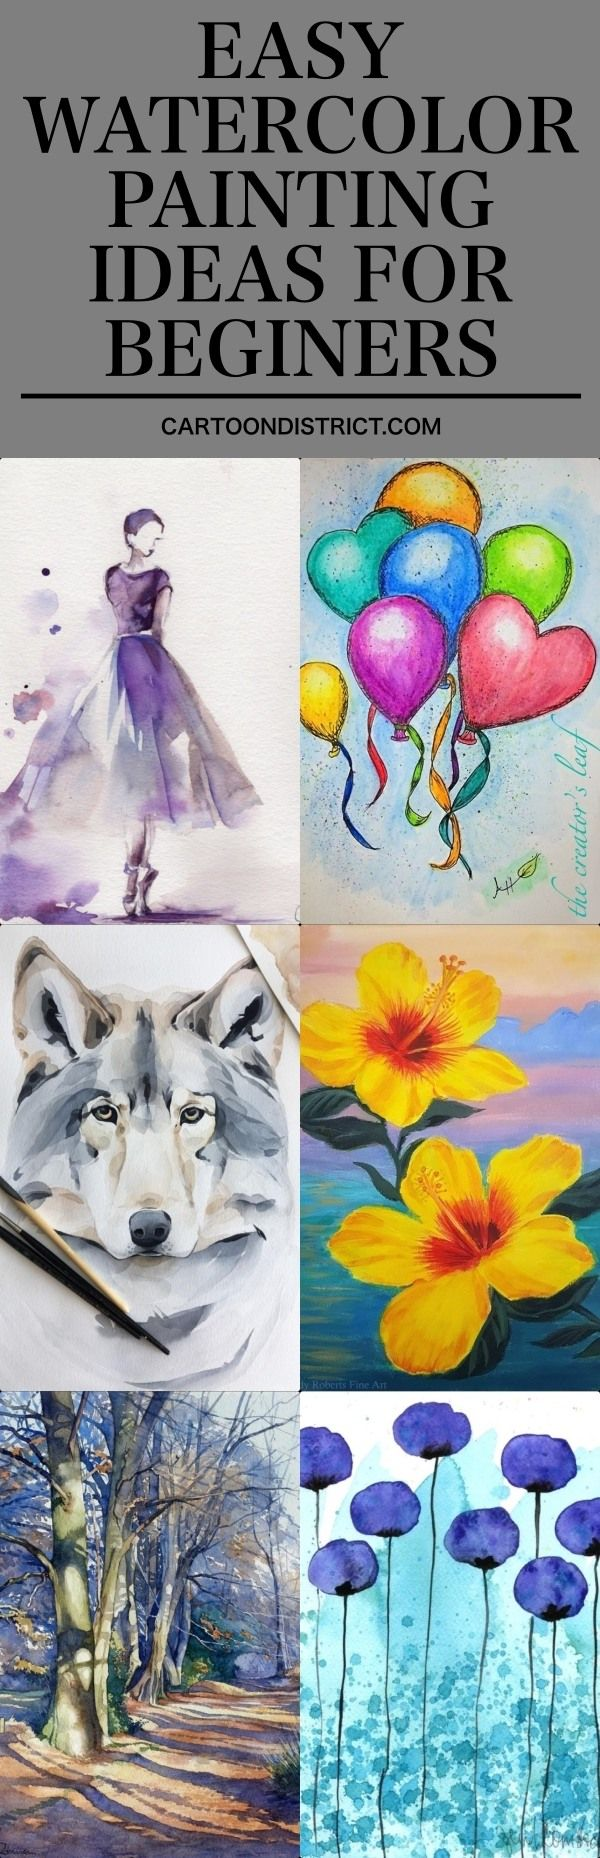 100 Easy Watercolor Painting Ideas For Beginners 600x18